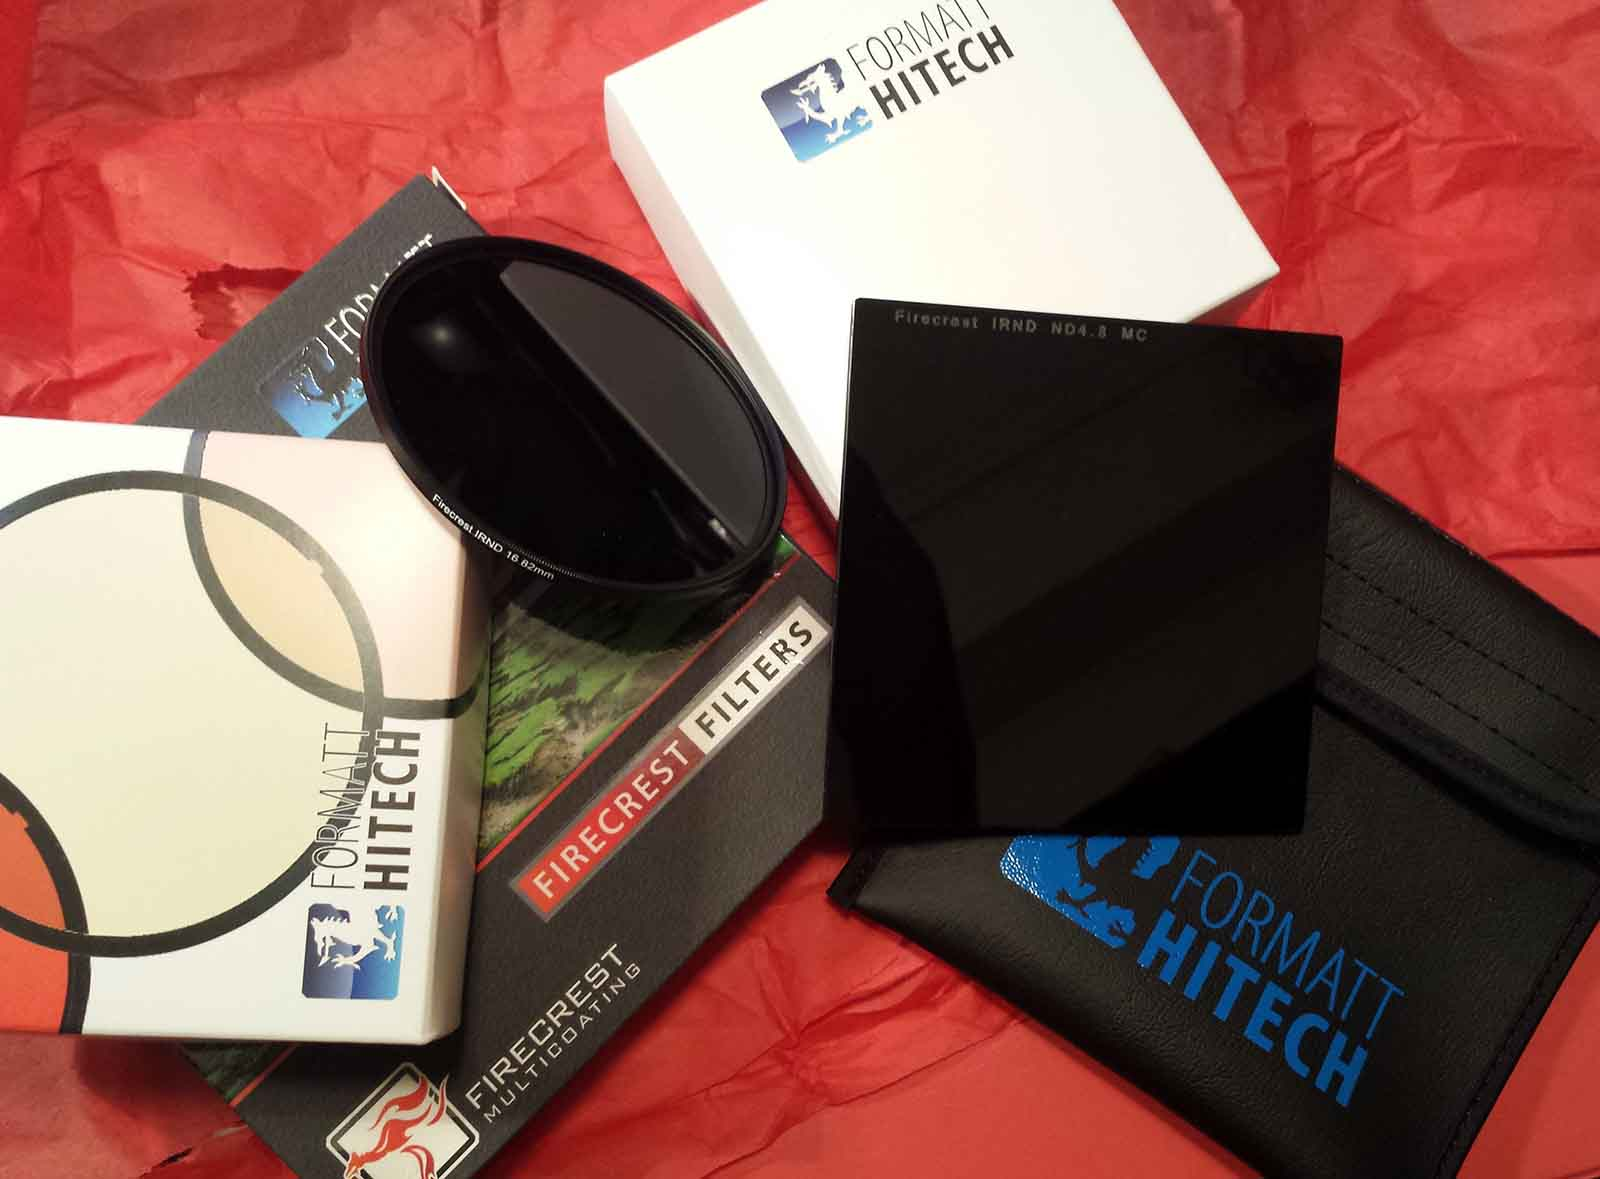 Firecrest 16 Stops Formatt-Hitech ND Filter - Circular and Rectangular filters with package